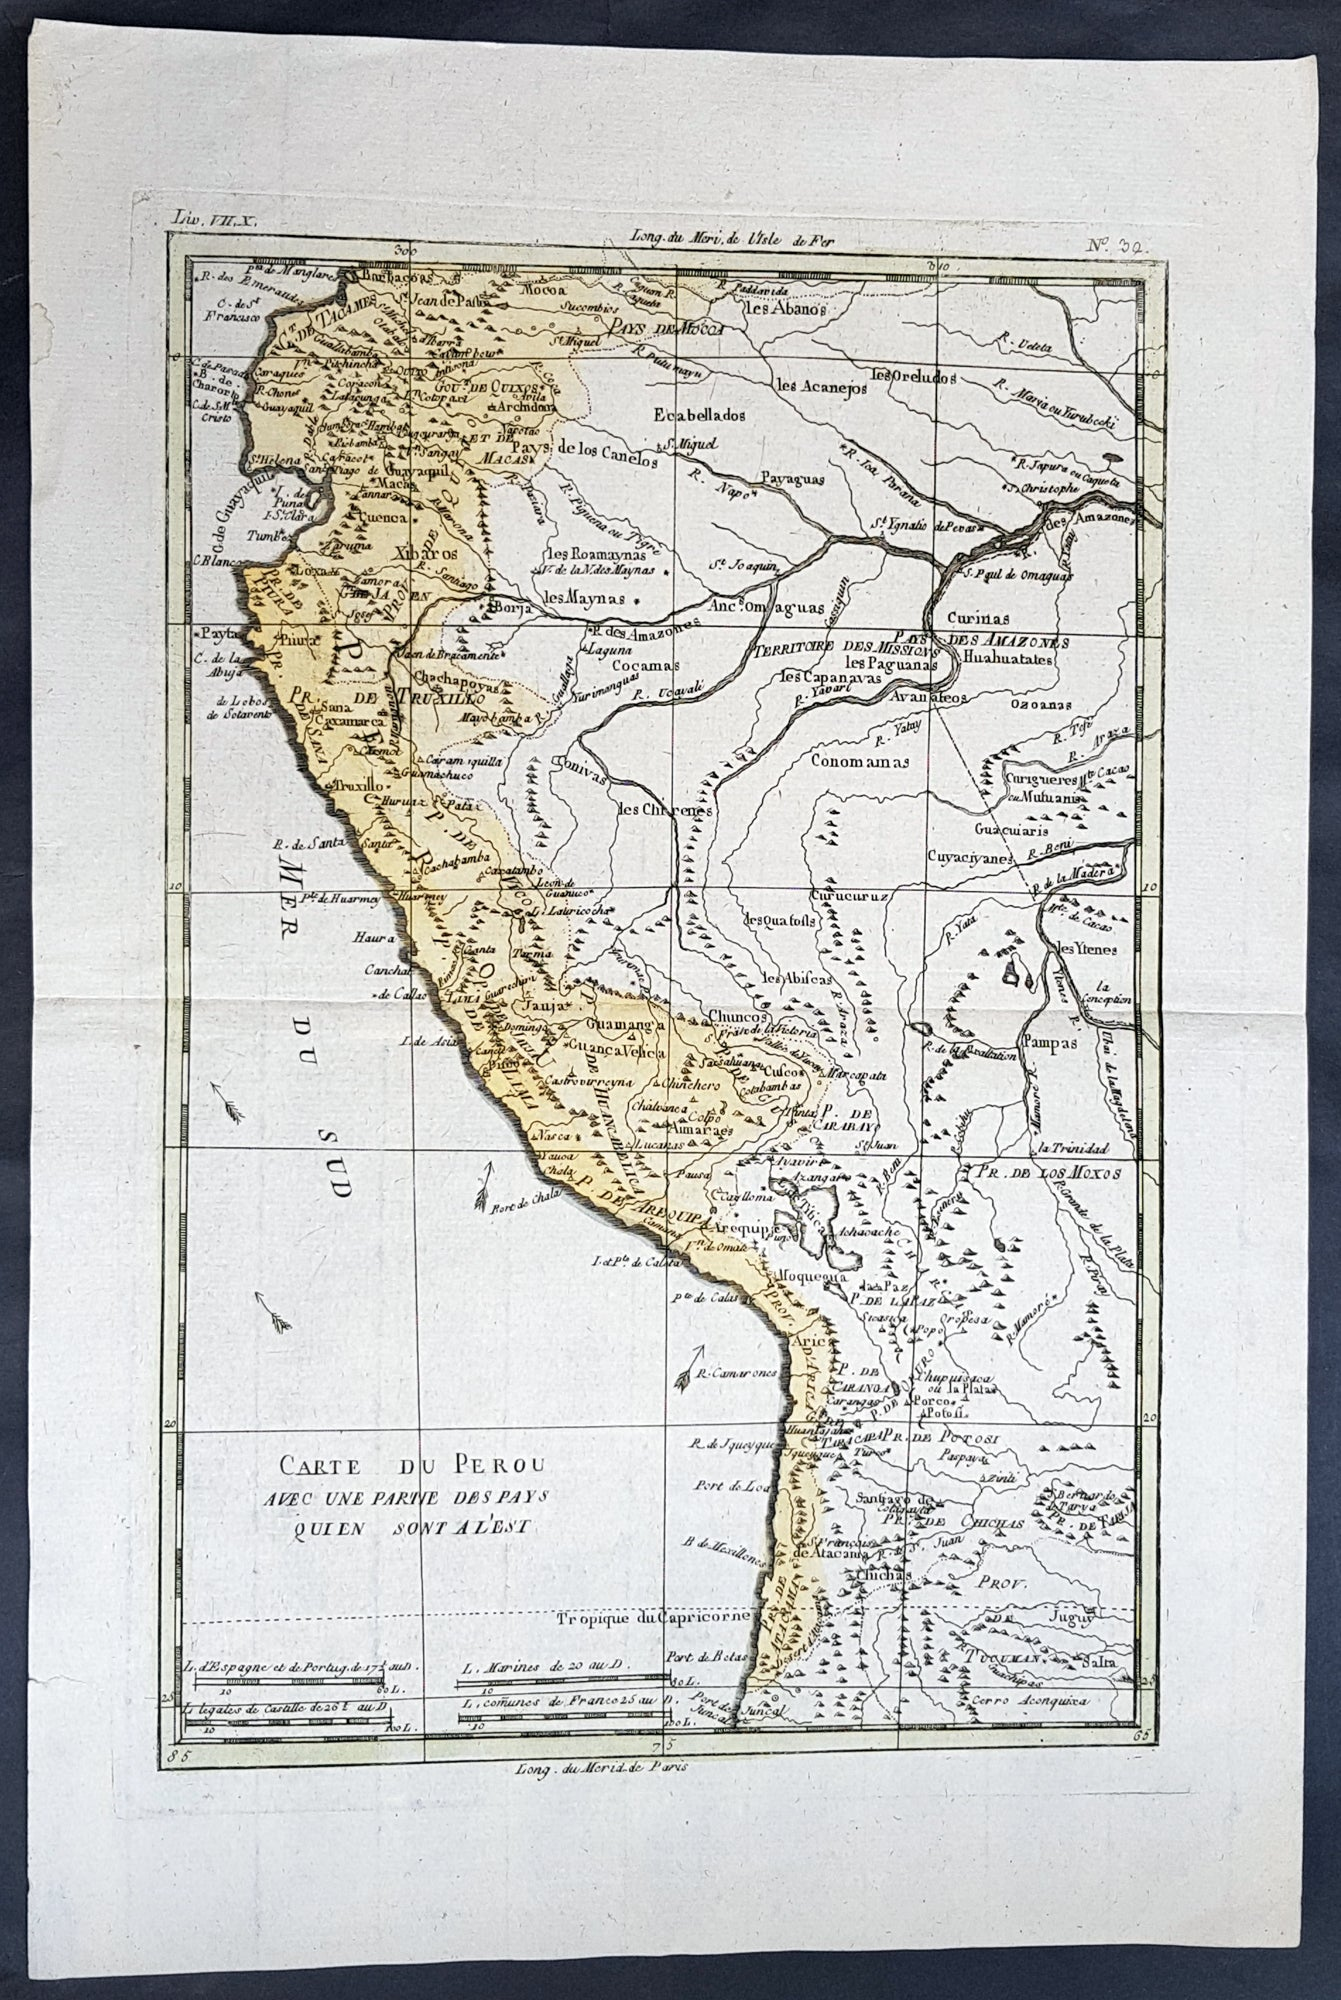 Amazon River In South America Map.1780 Rigobert Bonne Antique Map Of Peru The Amazon River South